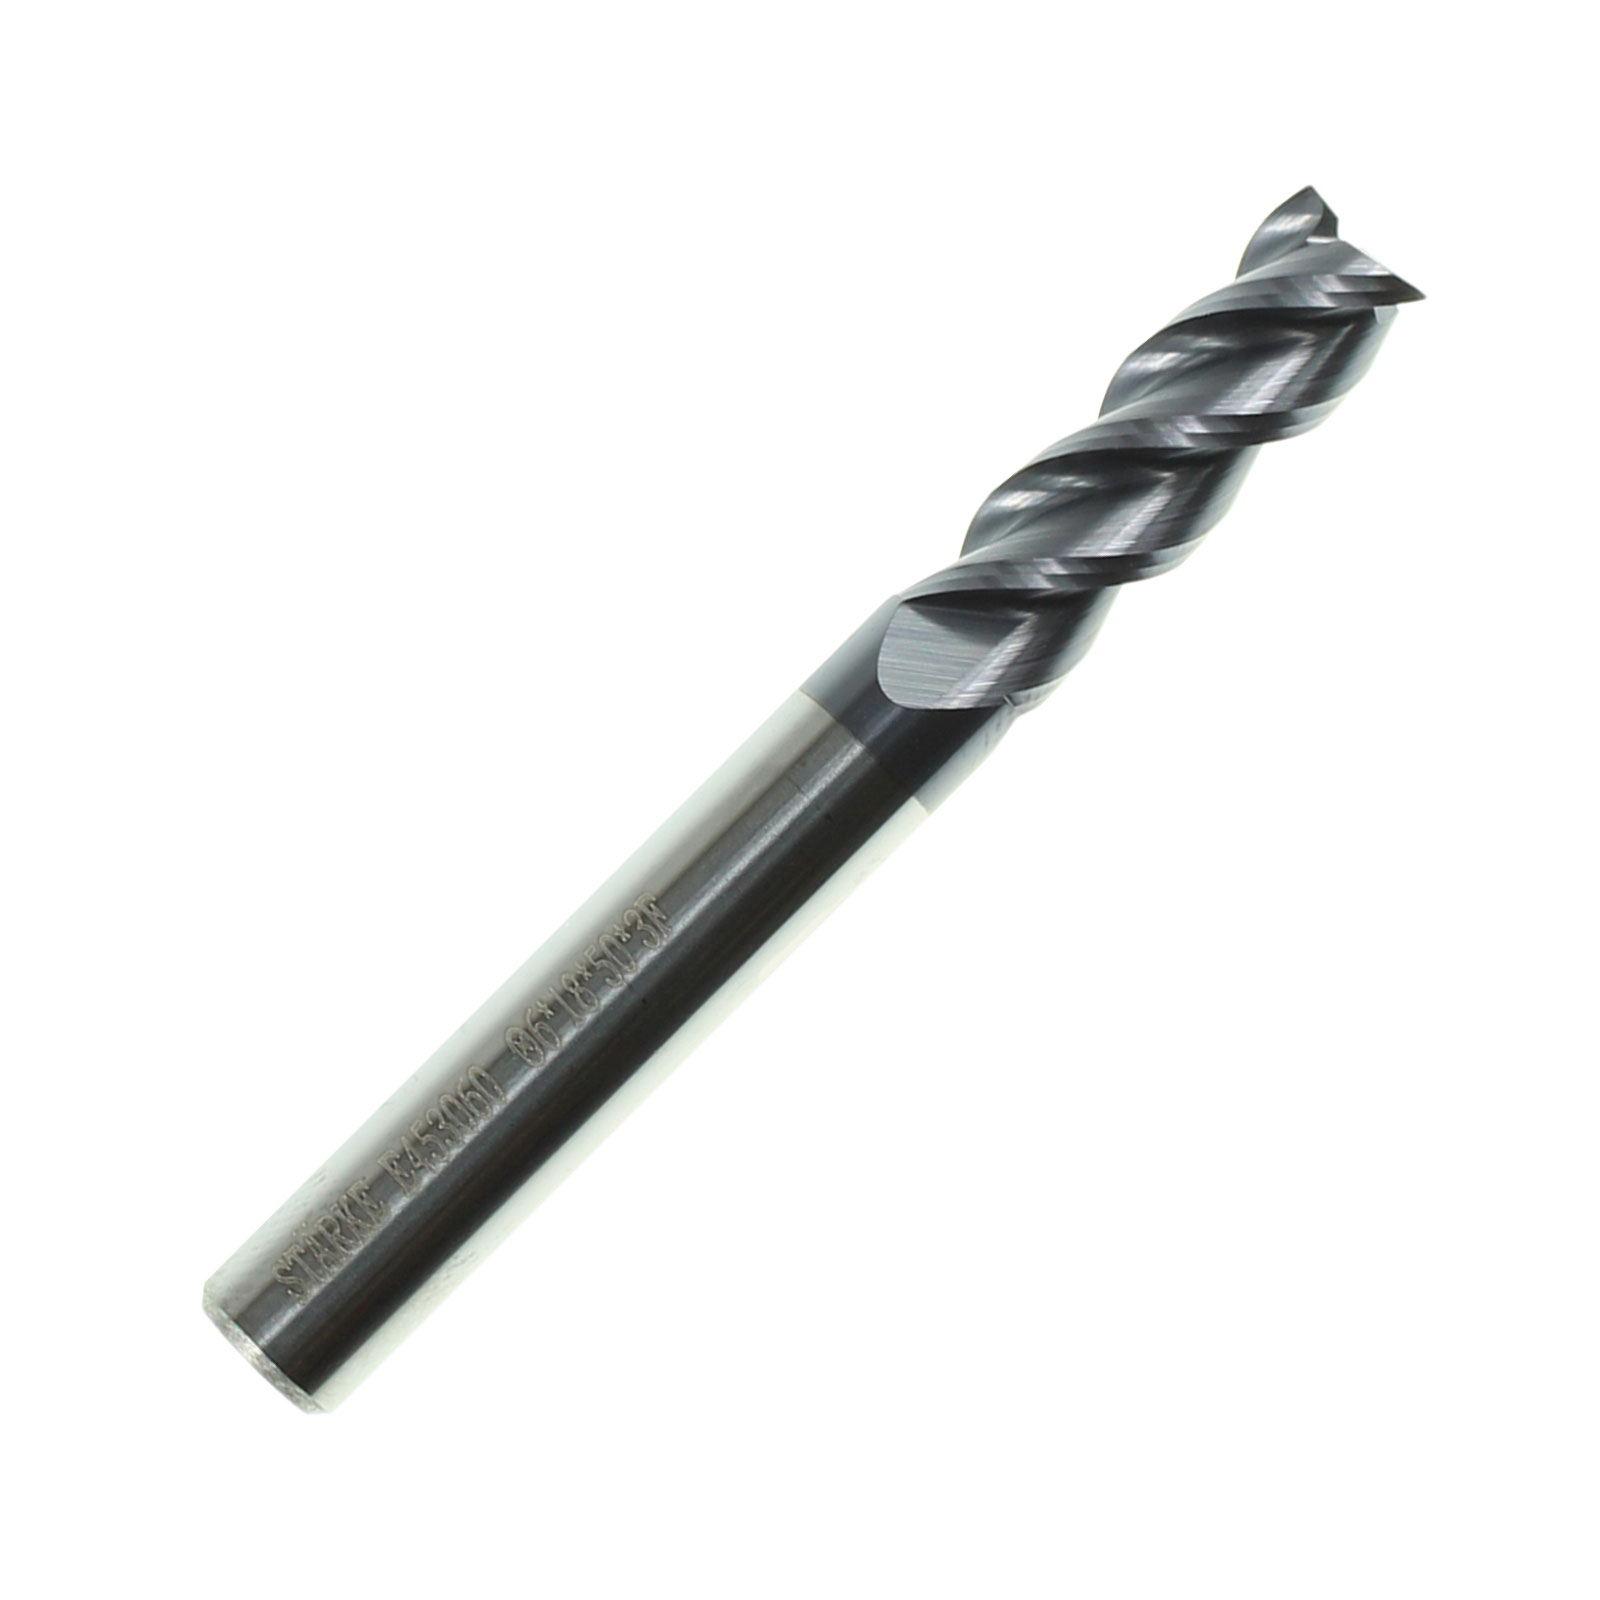 STARKE Eco-Mill Coated Carbide 3 Flute End Mill.